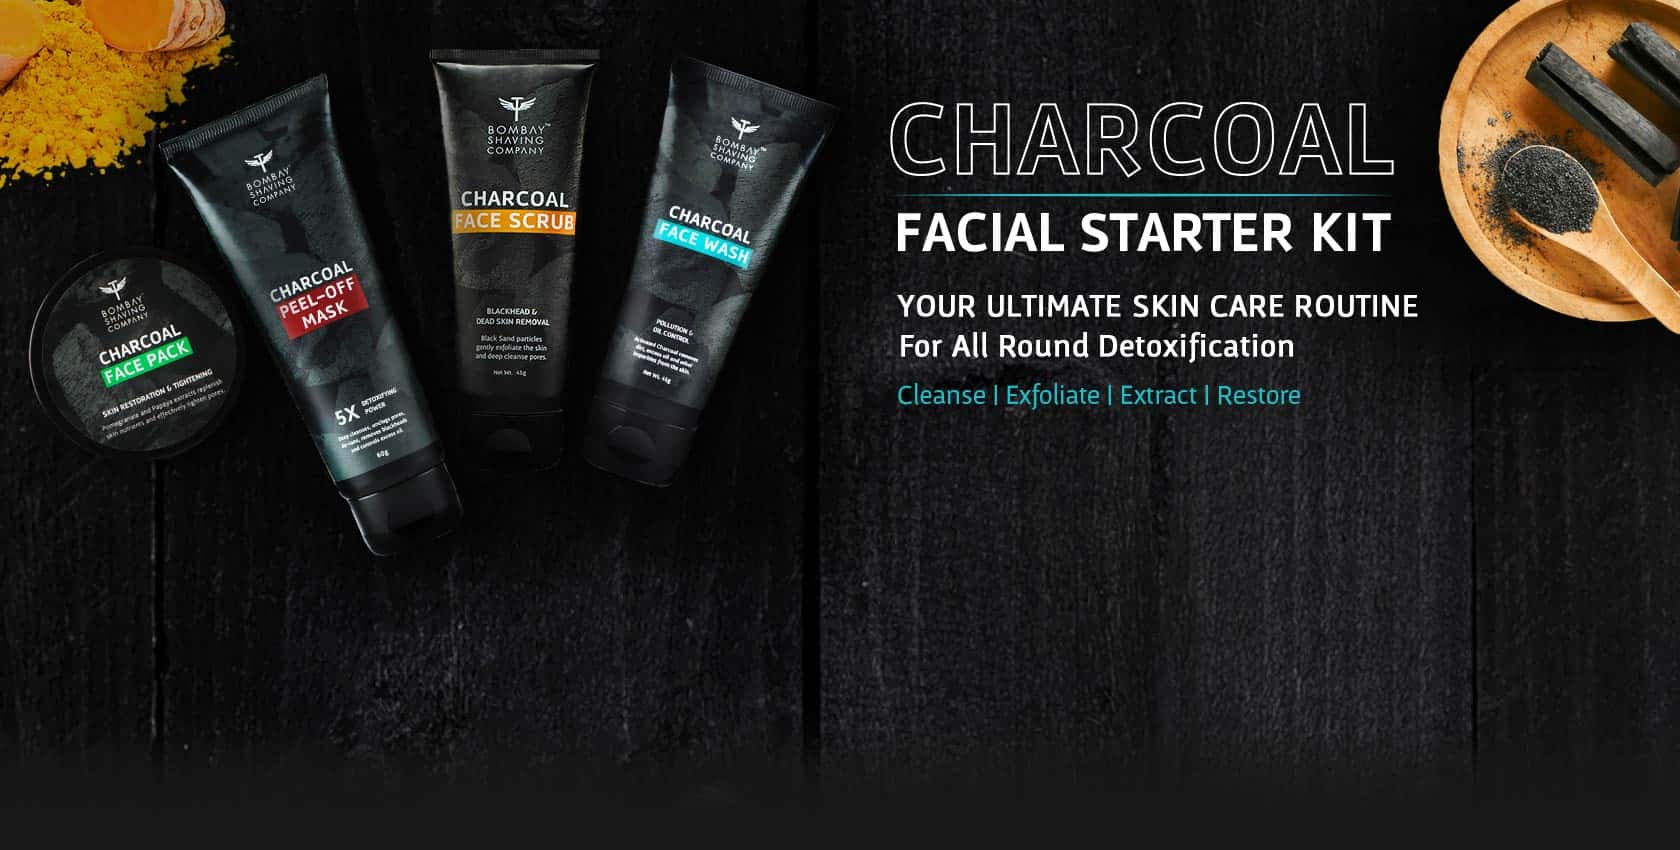 Bombay Shaving Company Charcoal Face Scrub | Best Face Scrub for Men